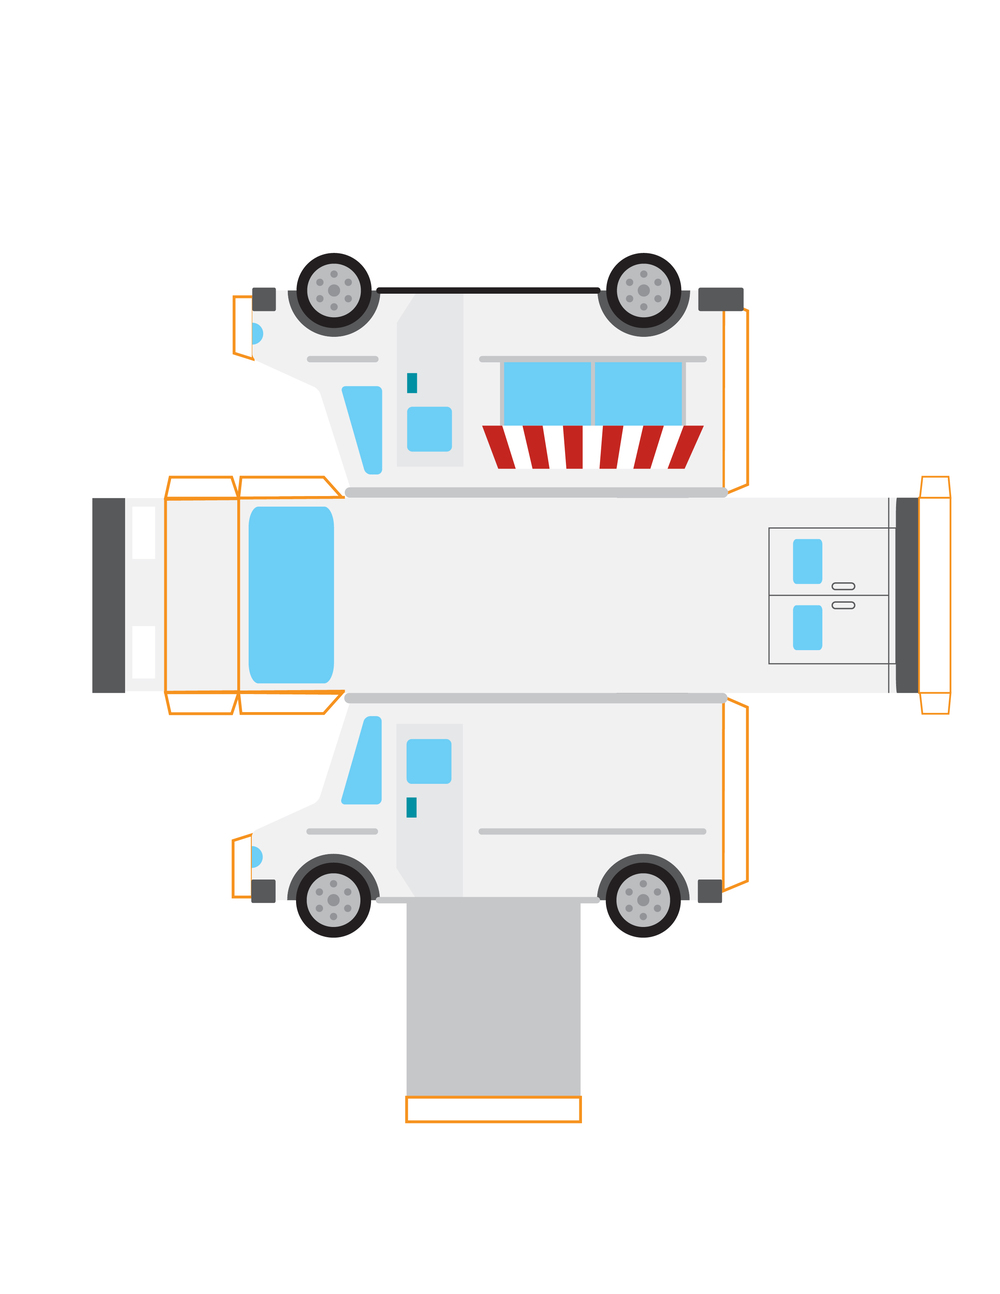 Food Truck Print Outs-01.jpg